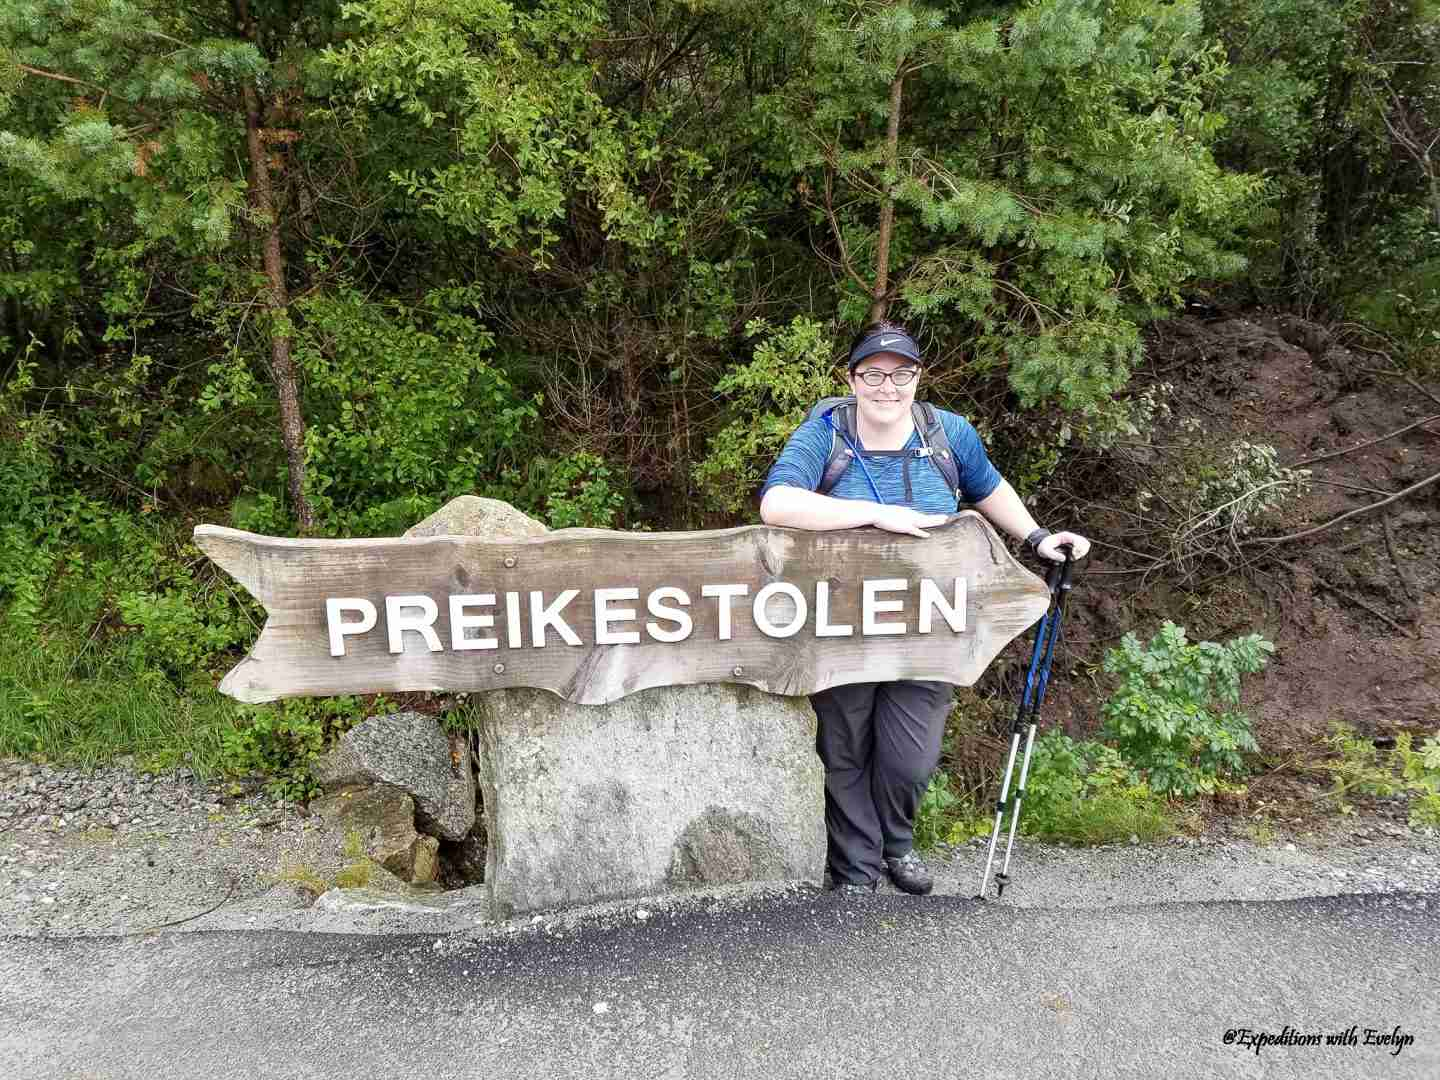 """A female hiker poses behind a brown sign with white letters that reads """"Prekiestolen.""""  She is holding trekking poles."""